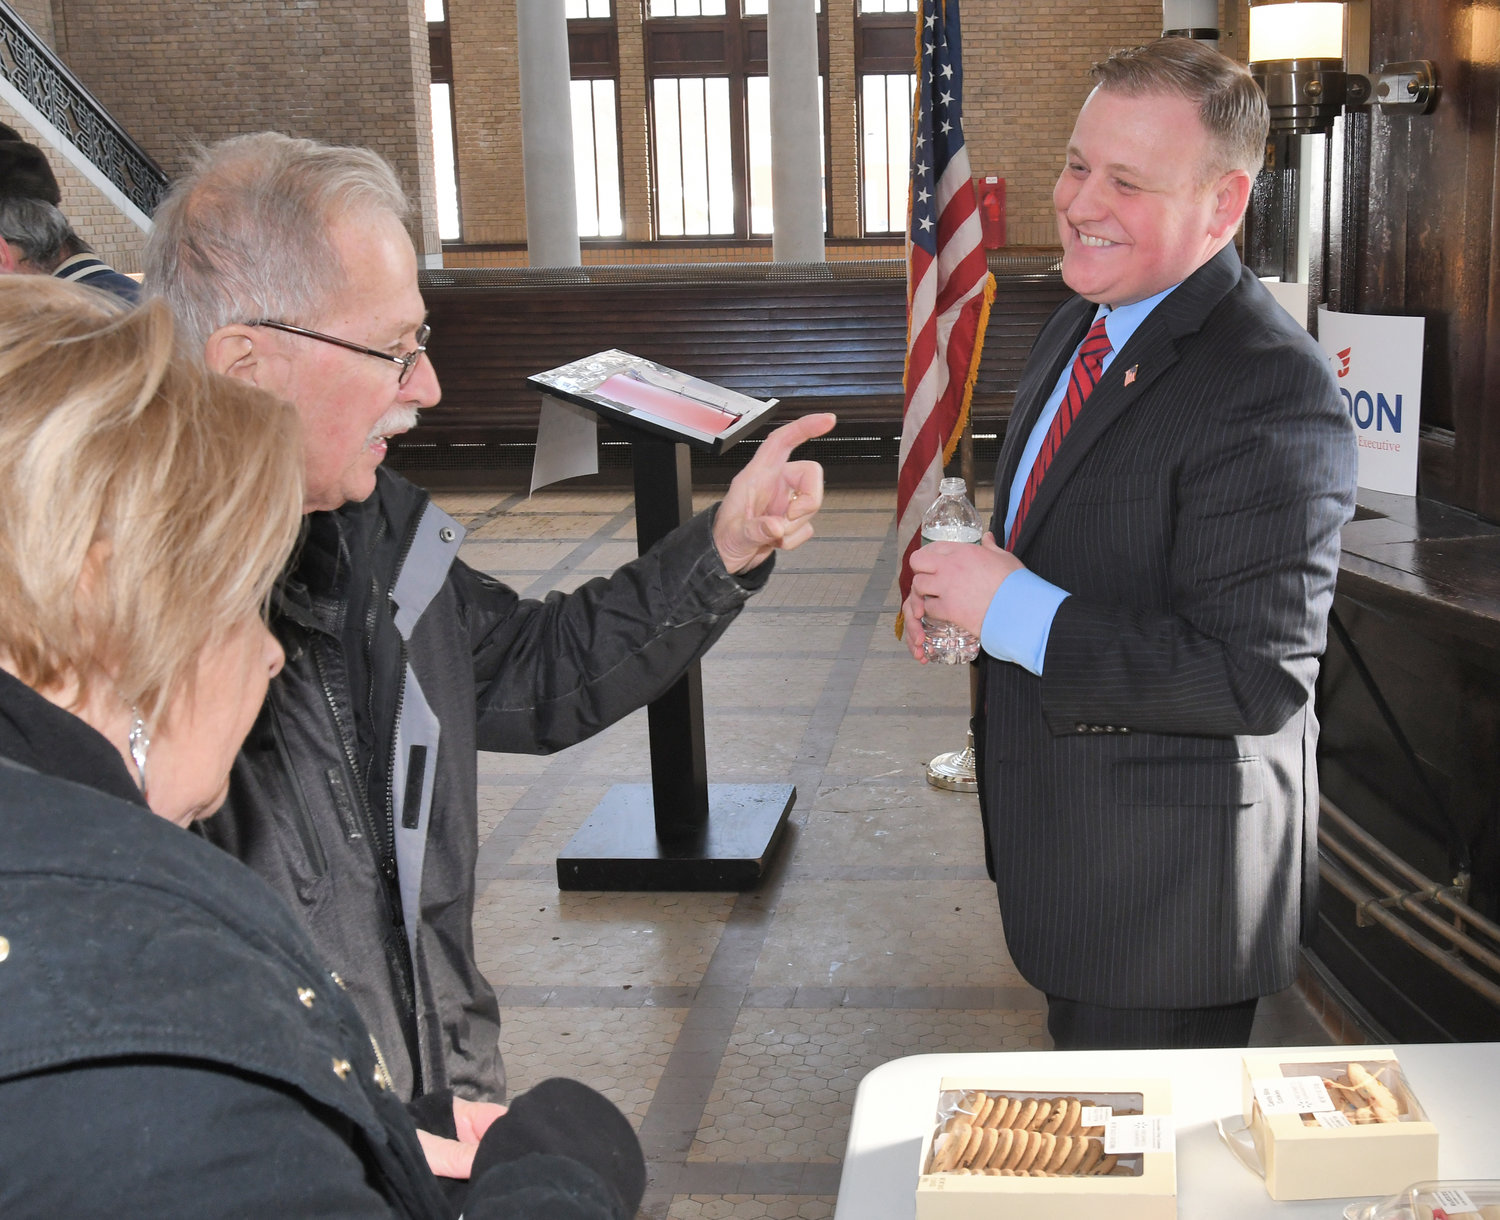 READY TO RUN — David Gordon, right, talks with uncle and aunt Dan and Candy Wisnoski just prior to making his announcement to run for Oneida County executive on Jan. 31 at the Rome Train Station on Martin Street. Gordon previously lost a hotly contested race for county clerk in  November.